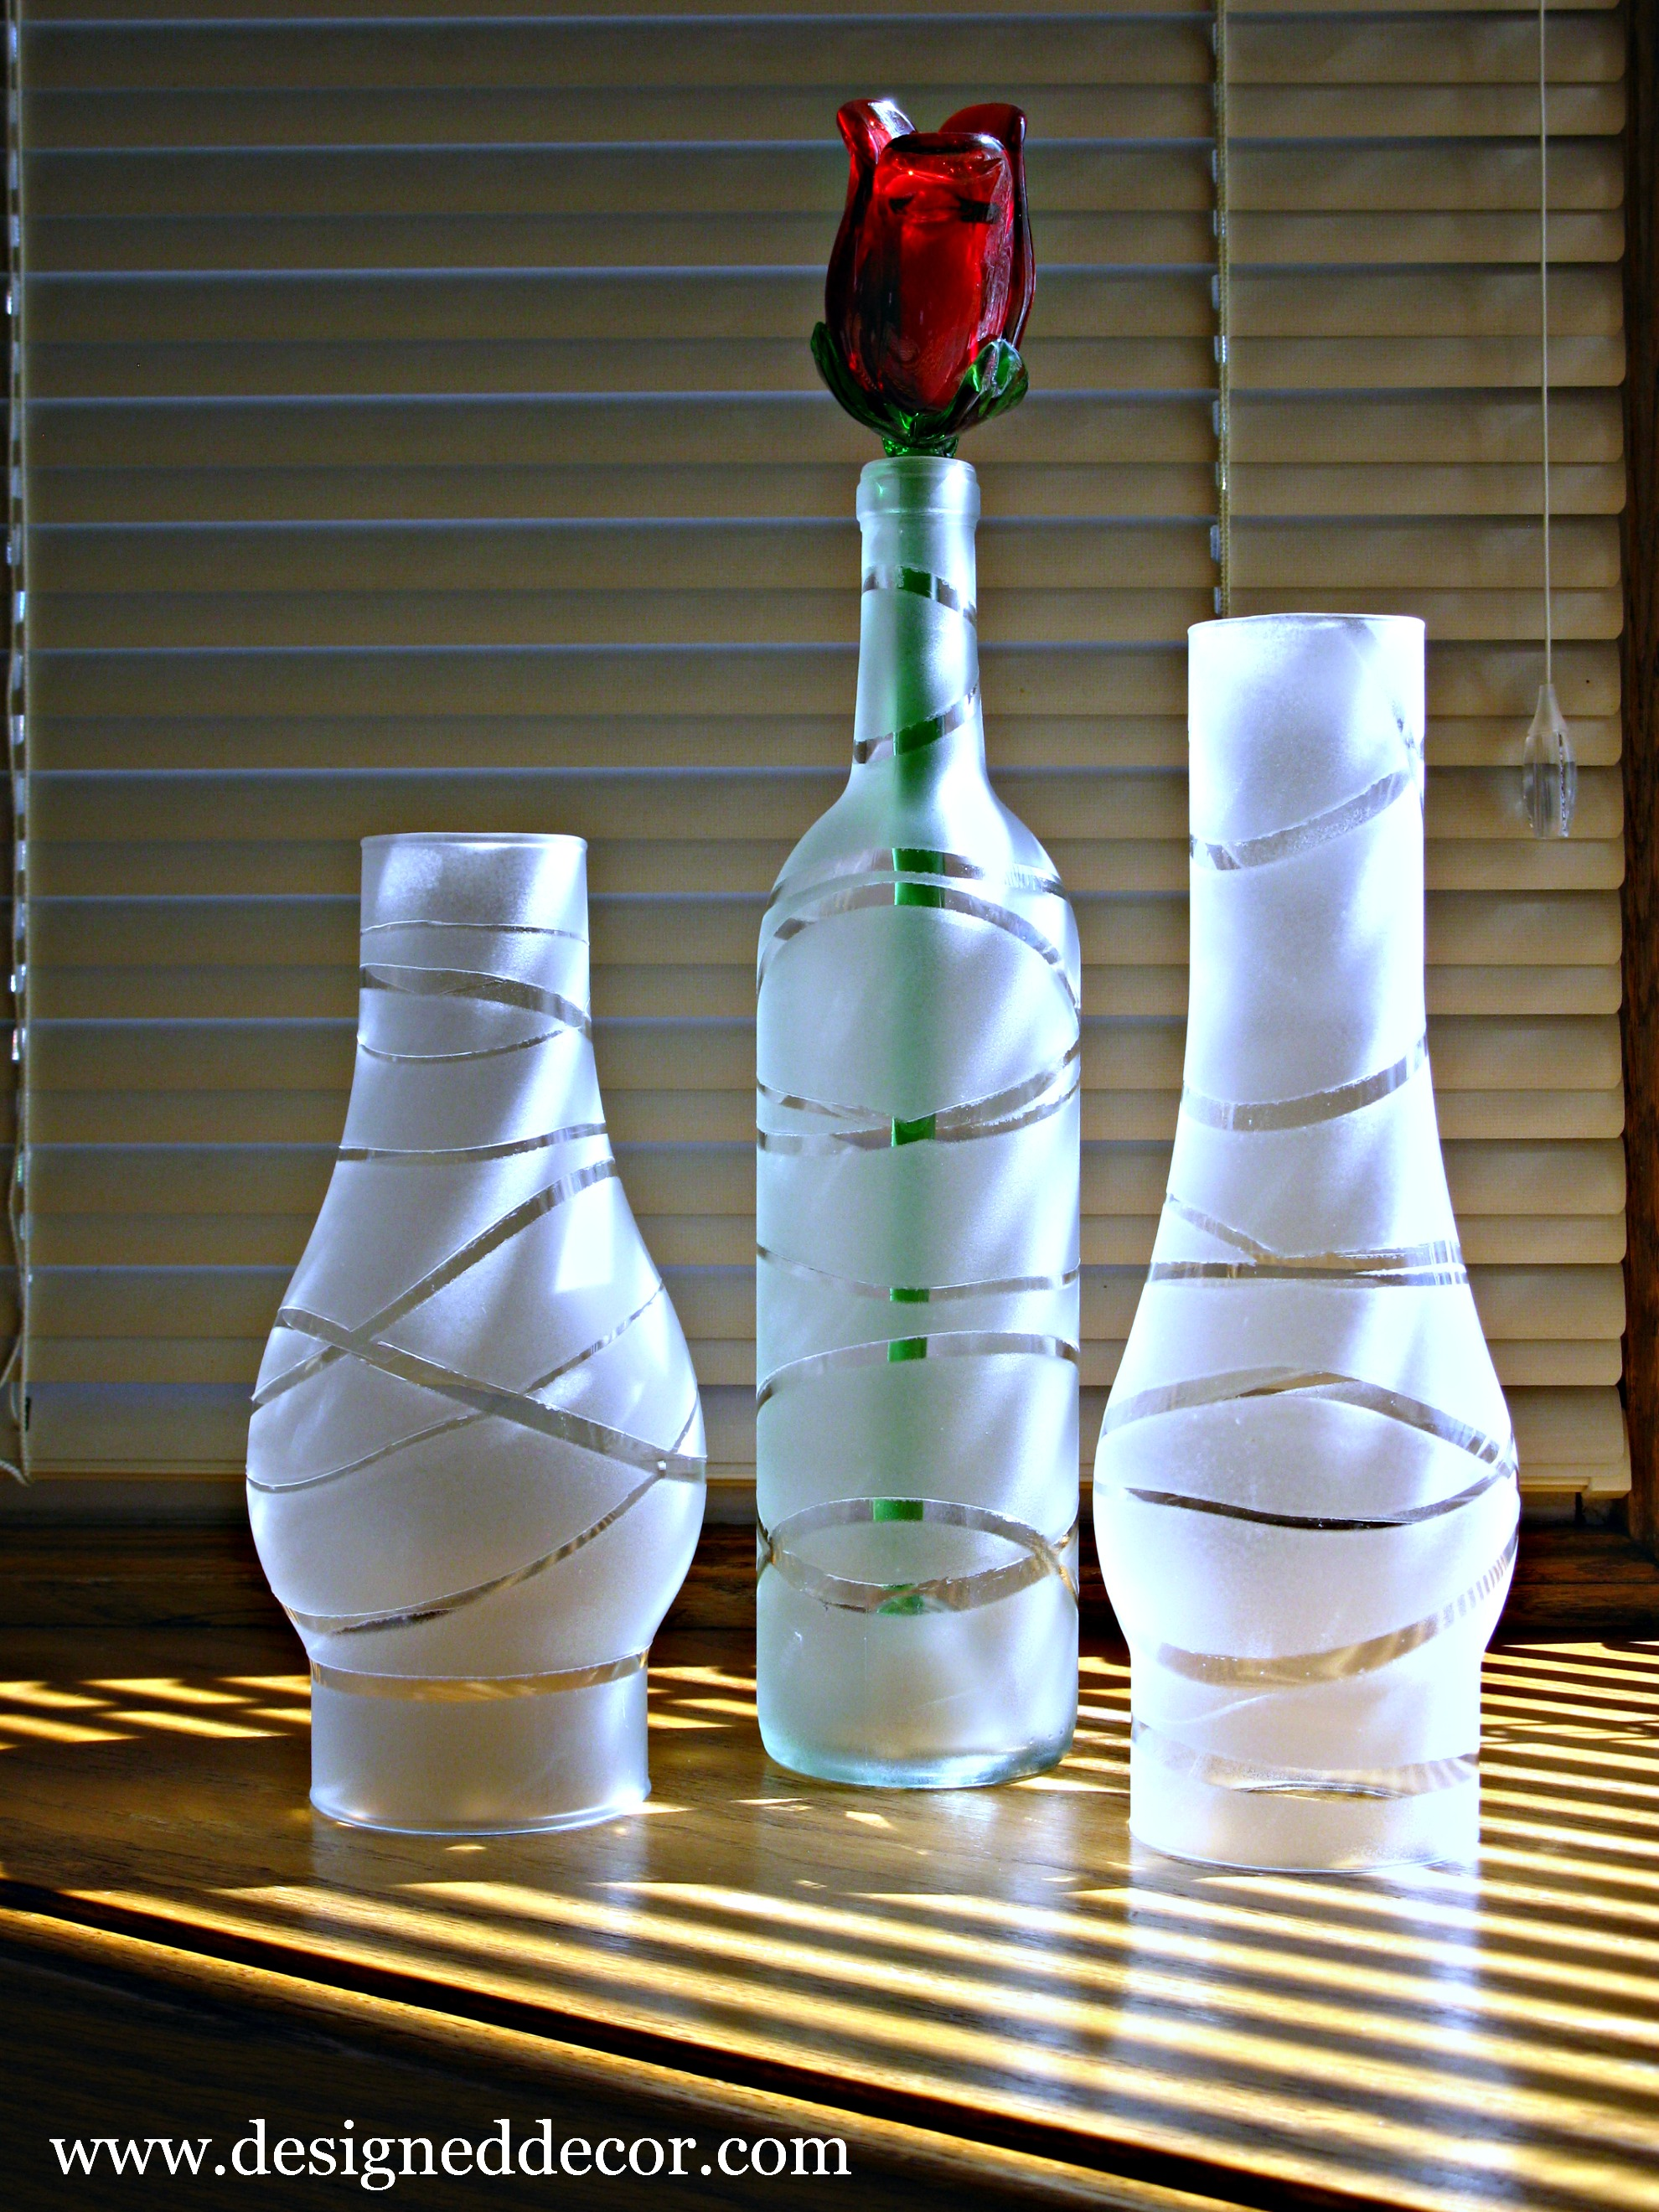 Diy painted jars and bottles designed decor for What can you paint glass with